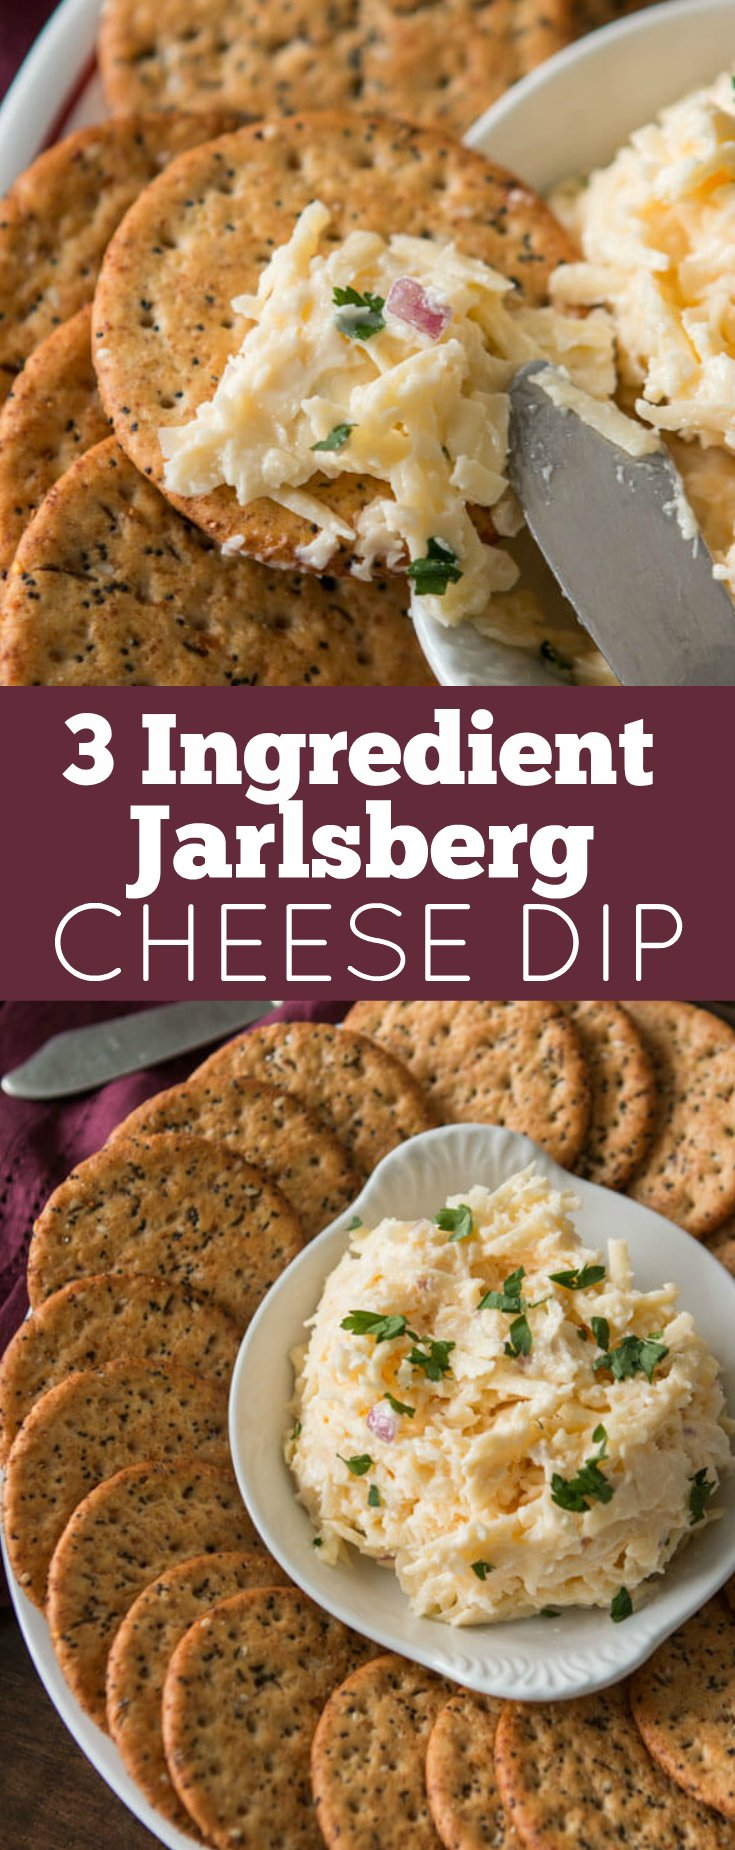 Cheese and crackers happens to be one of my favorite things and this 3 Ingredient Jarlsberg Dip totally hits the spot plus it's a quick and easy party appetizer.